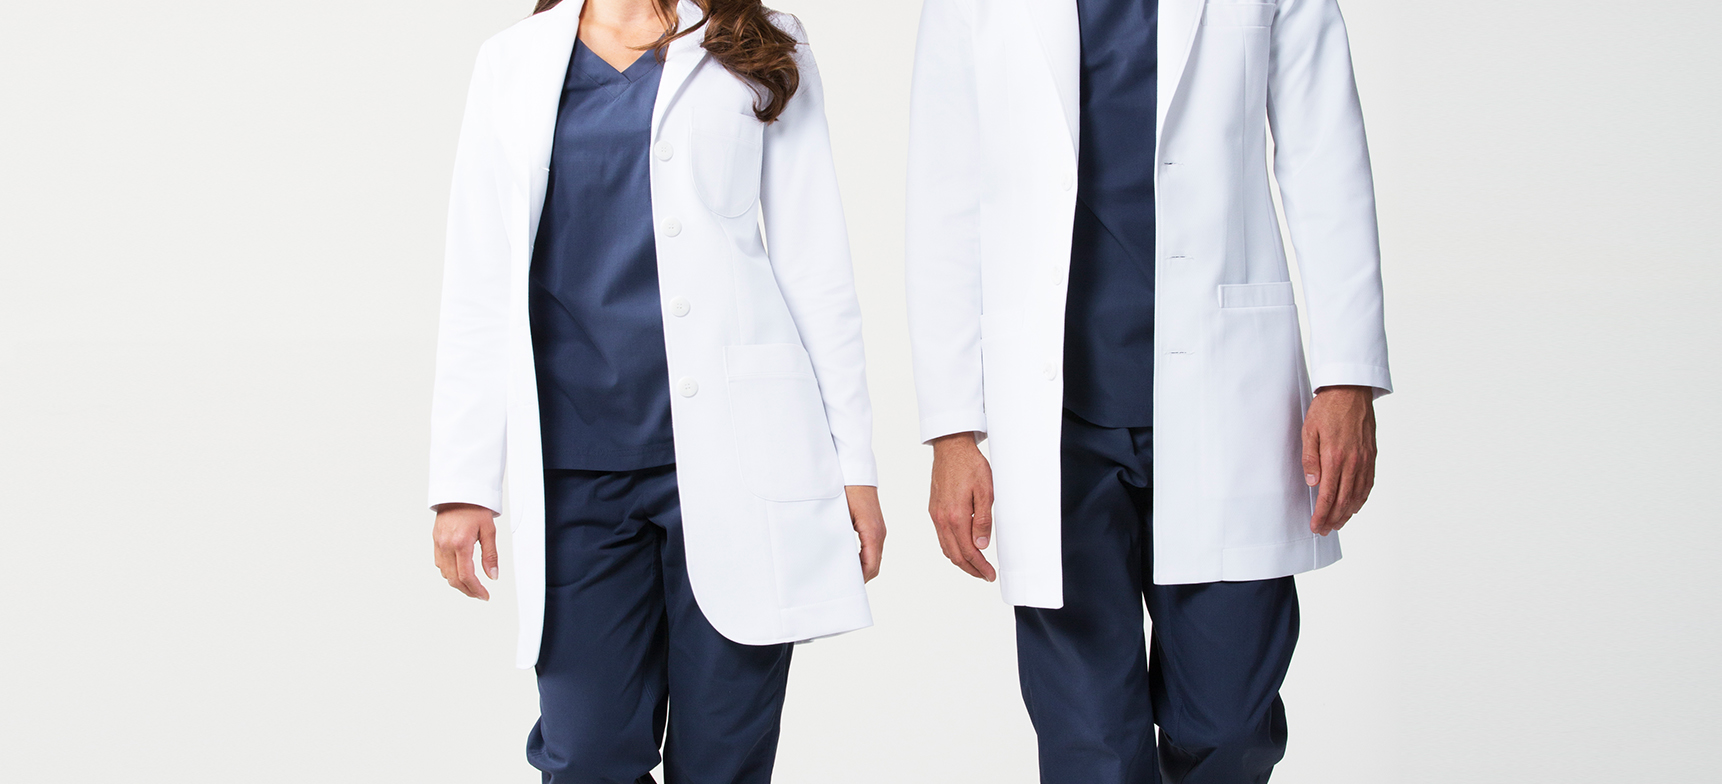 Contemporary lab coats scrubsandlabcoats high quality lab coats are distinguished by a professional appearance jeuxipadfo Gallery